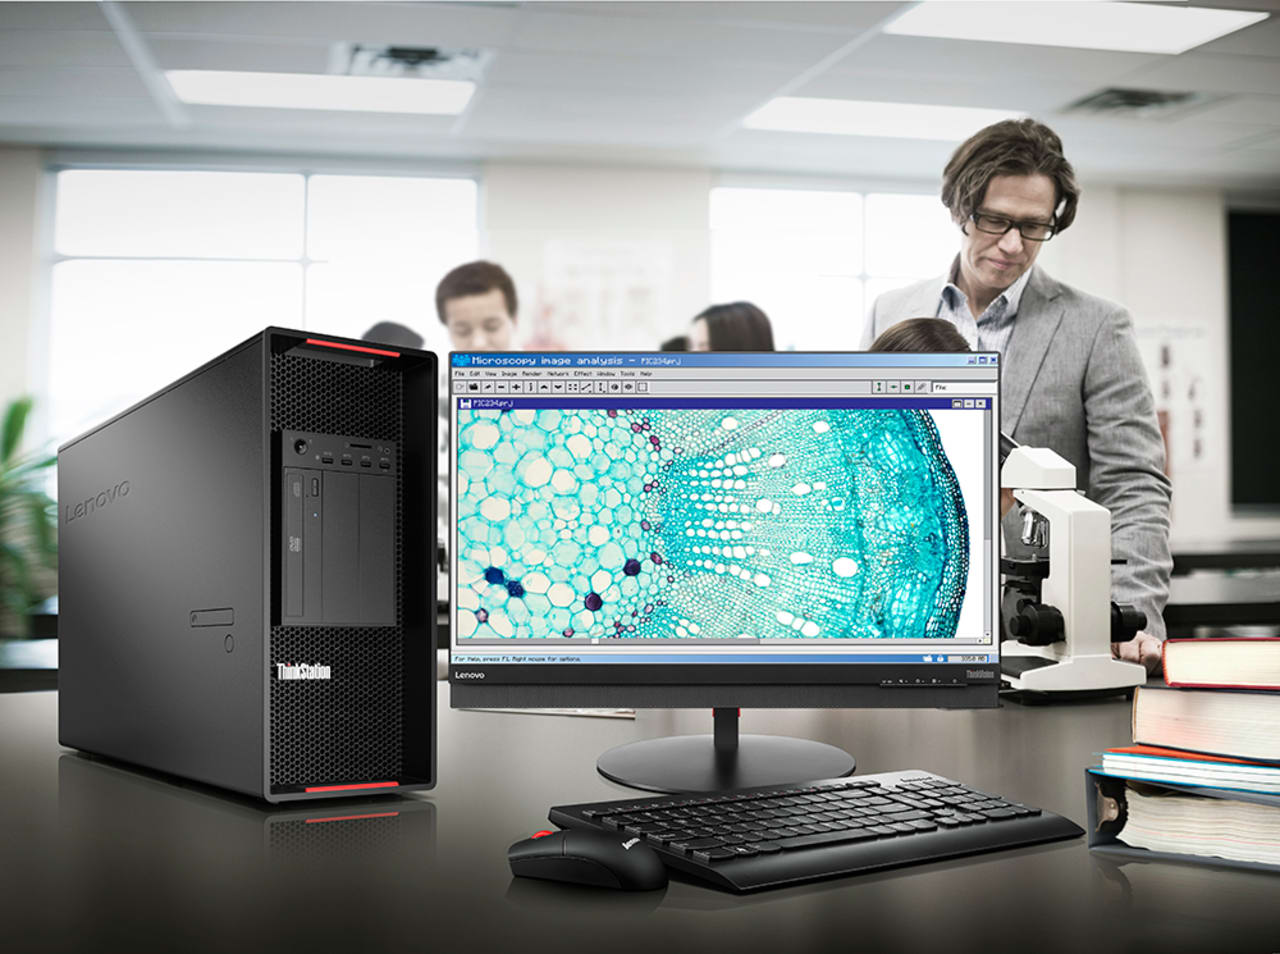 Thinking inside the box: How Lenovo is reimagining the desktop workstation